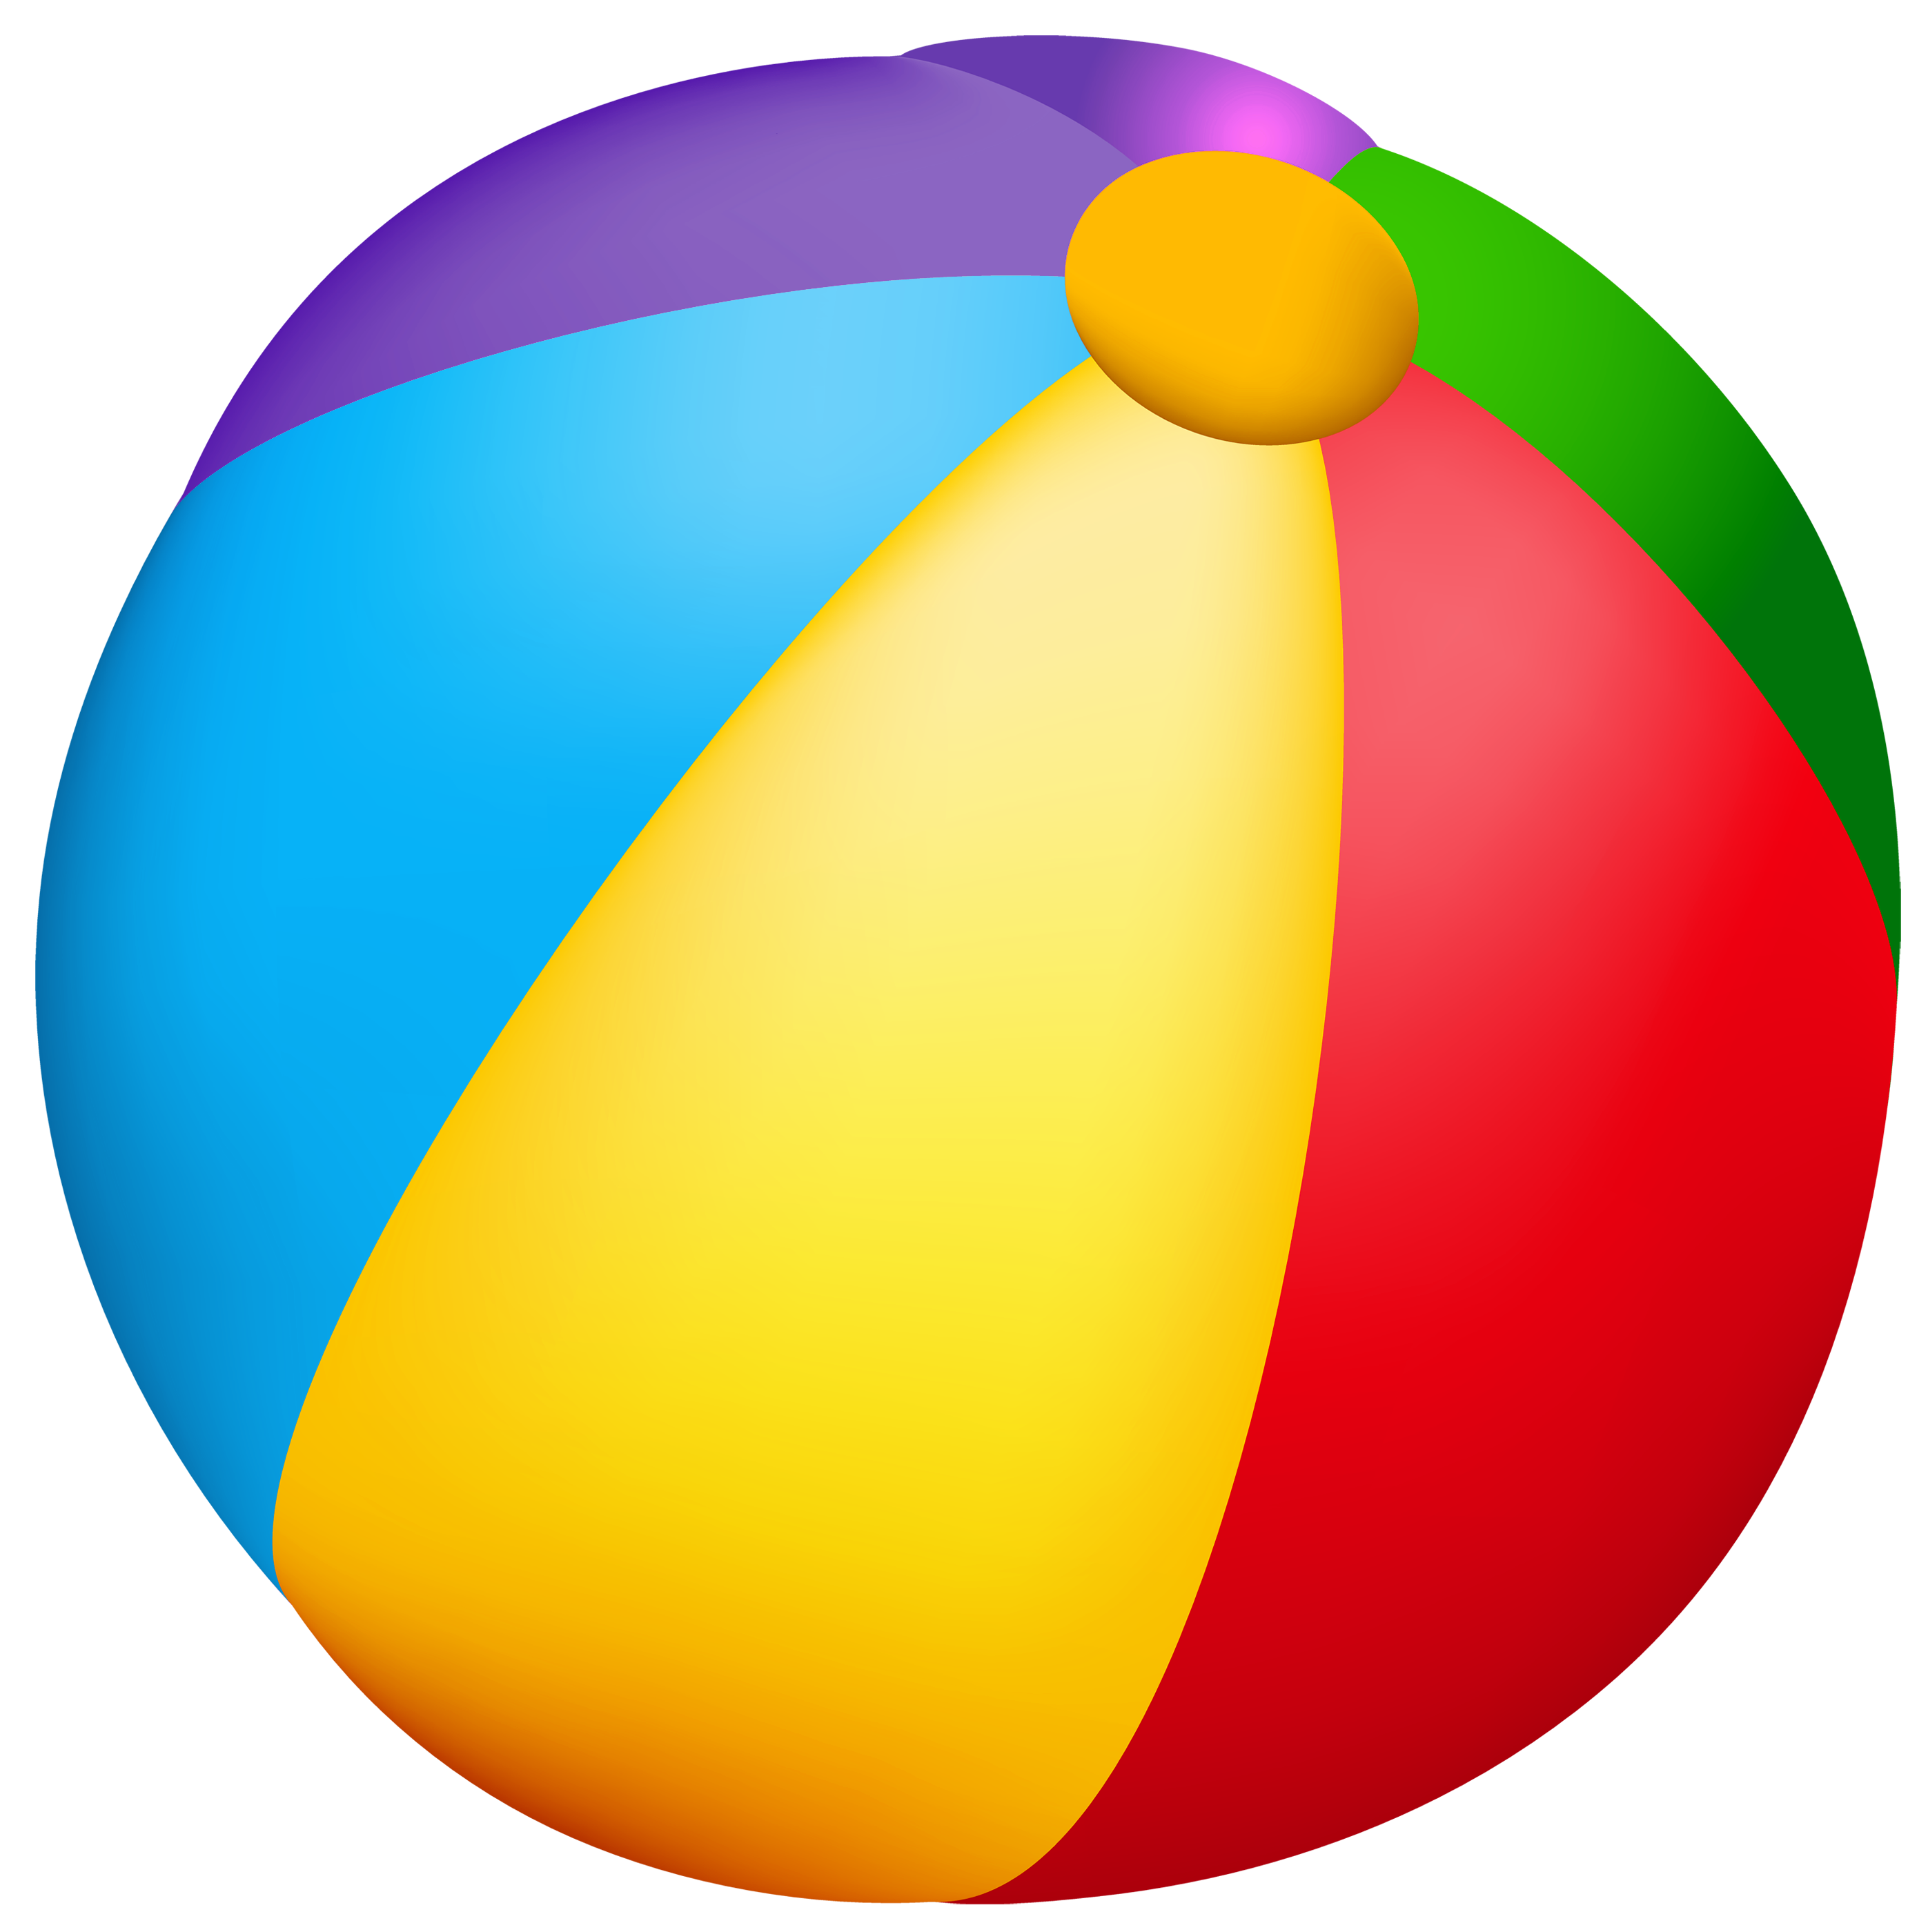 Beach ball clip art. Beachball clipart equipment